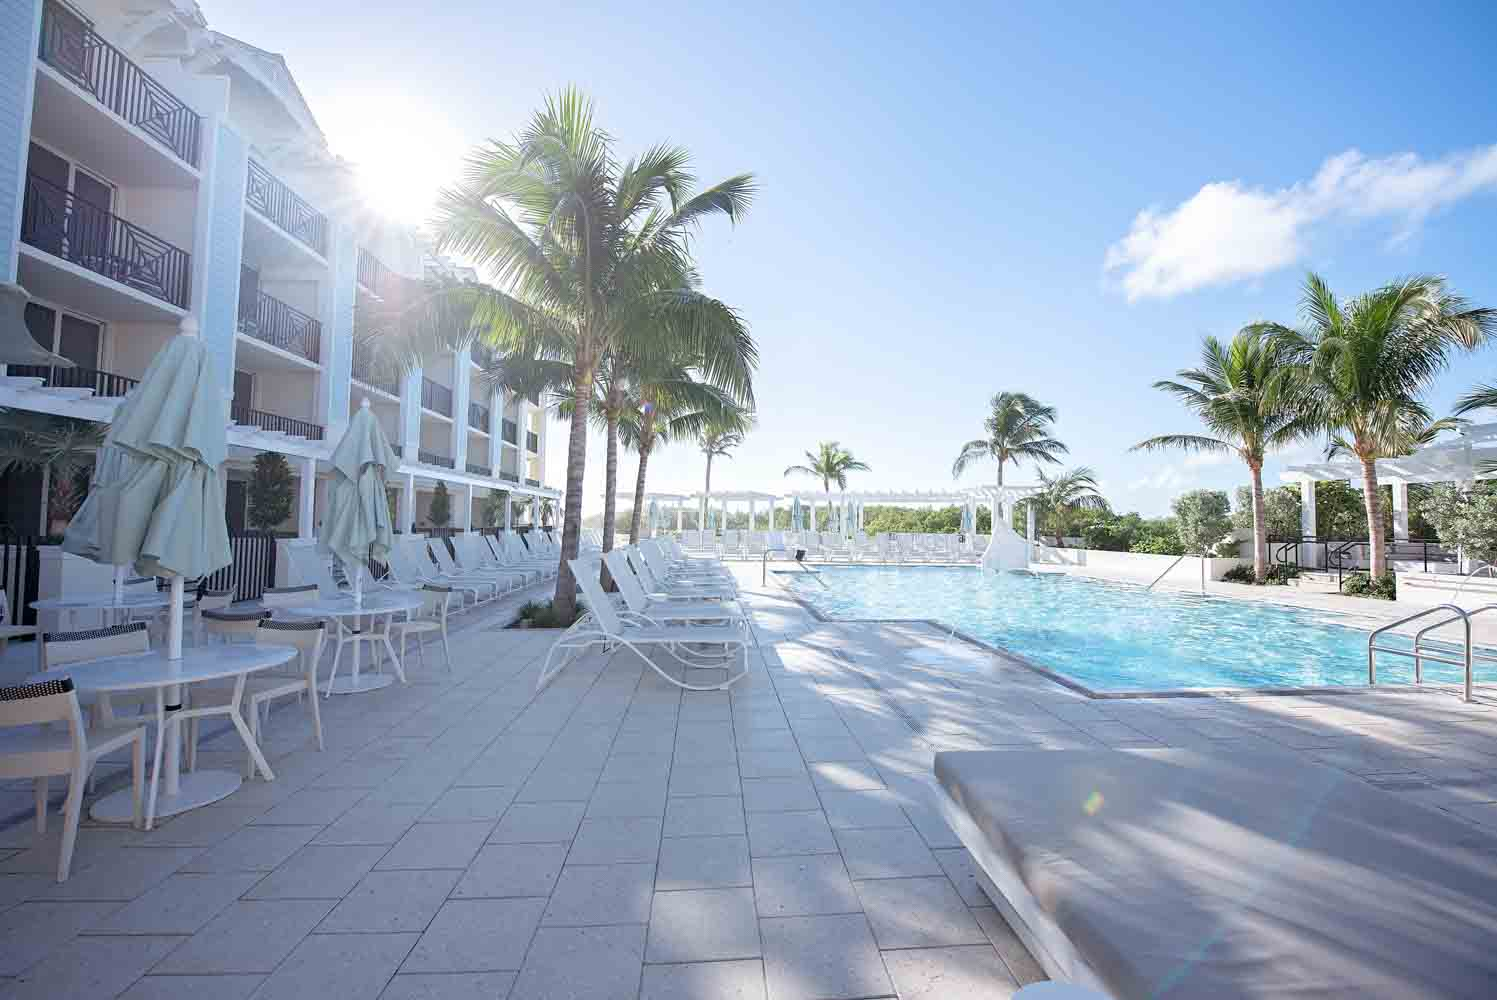 pool deck at the Hutchinson Shores Resort and Spa